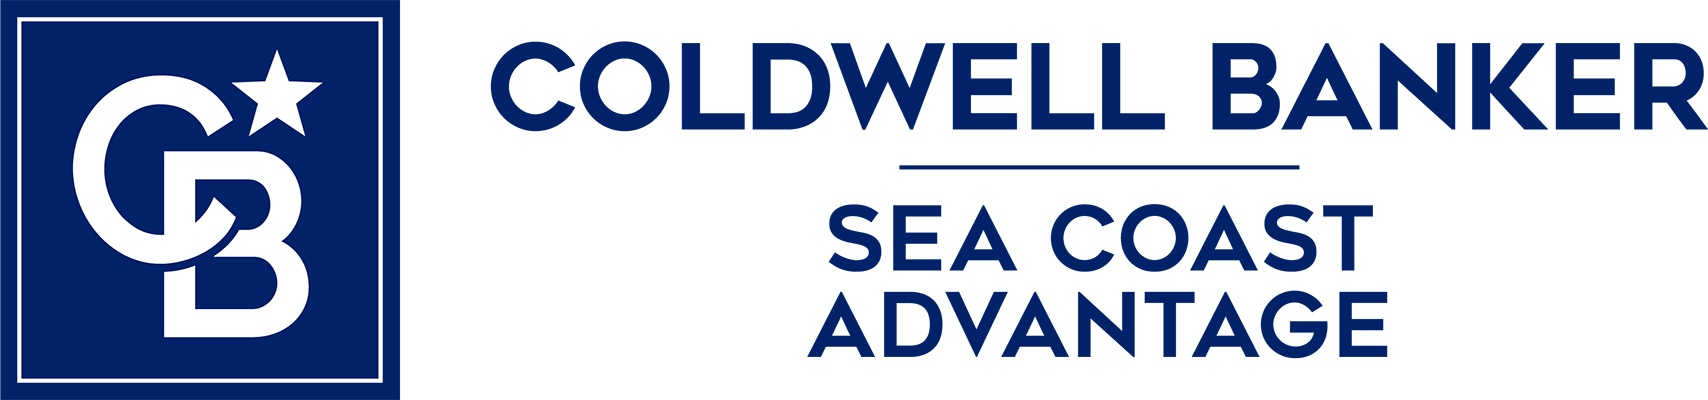 Marisa Pierce - Coldwell Banker Sea Coast Advantage Realty Logo